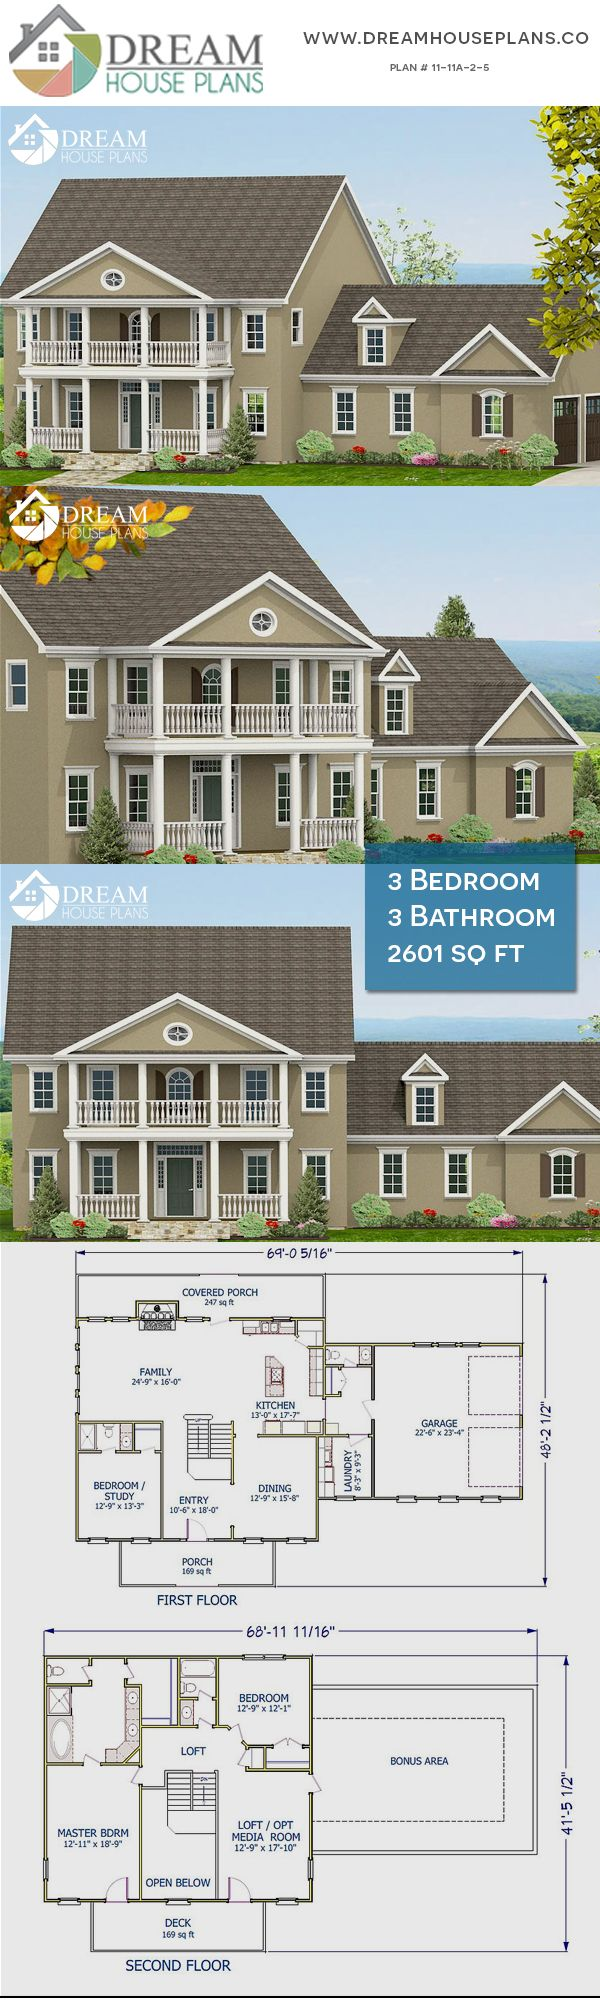 Dream House Plans Affordable Yet Luxury Southern 3 Bedroom 2601 Sq Ft House Plan With Basement We C Dream House Plans New House Plans Southern House Plans